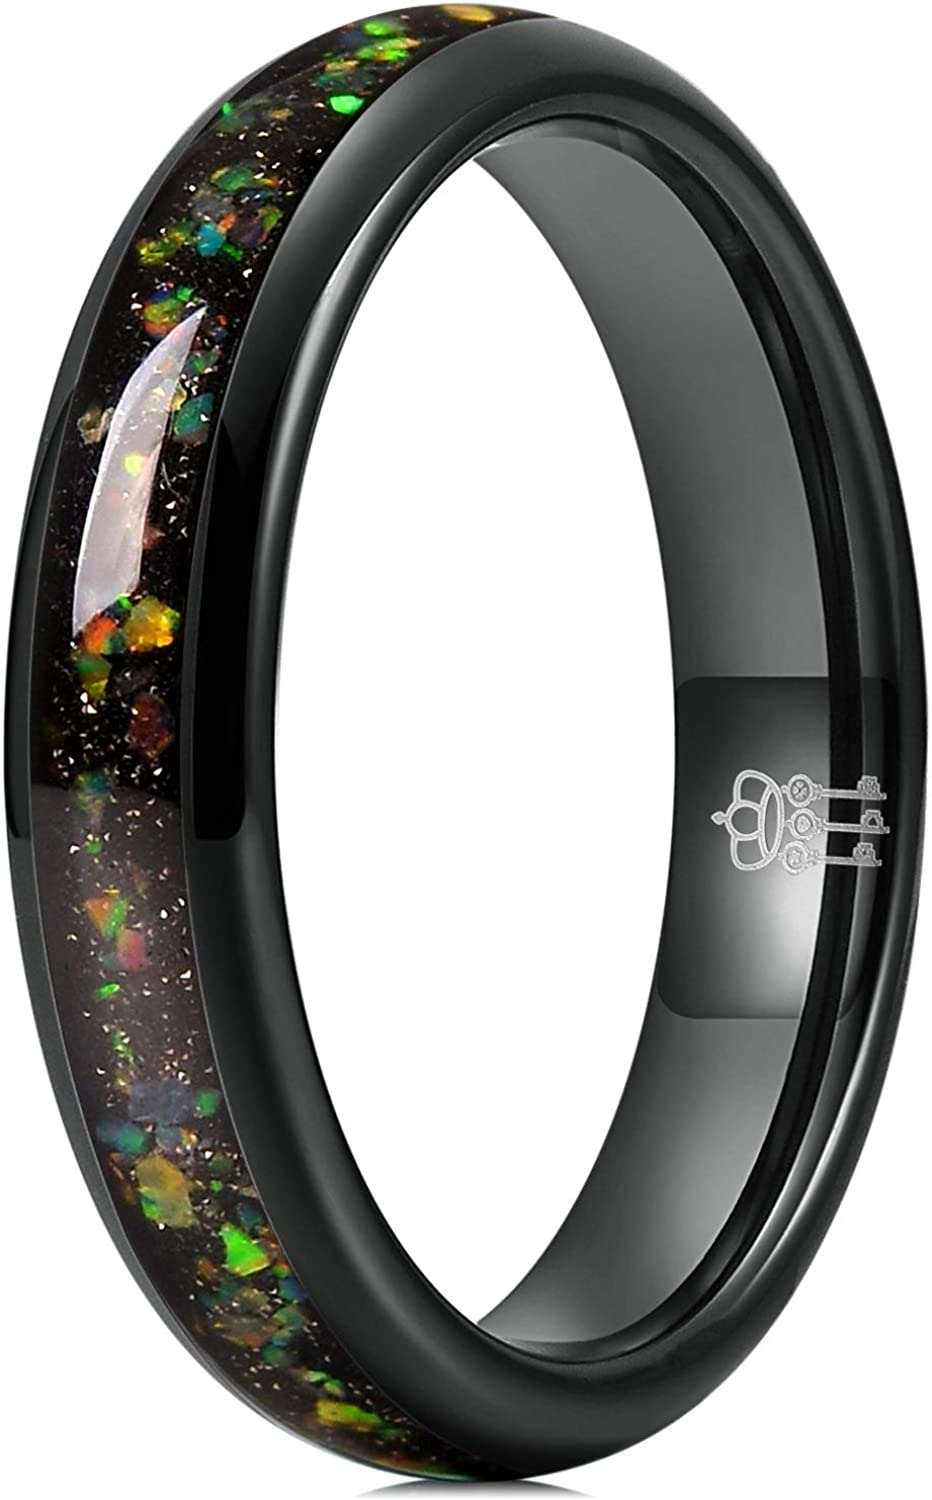 THREE KEYS JEWELRY Mens Womens 4mm 8mm Galaxy Collection Fire Created-opal Inlay Tungsten Wedding Rings Band